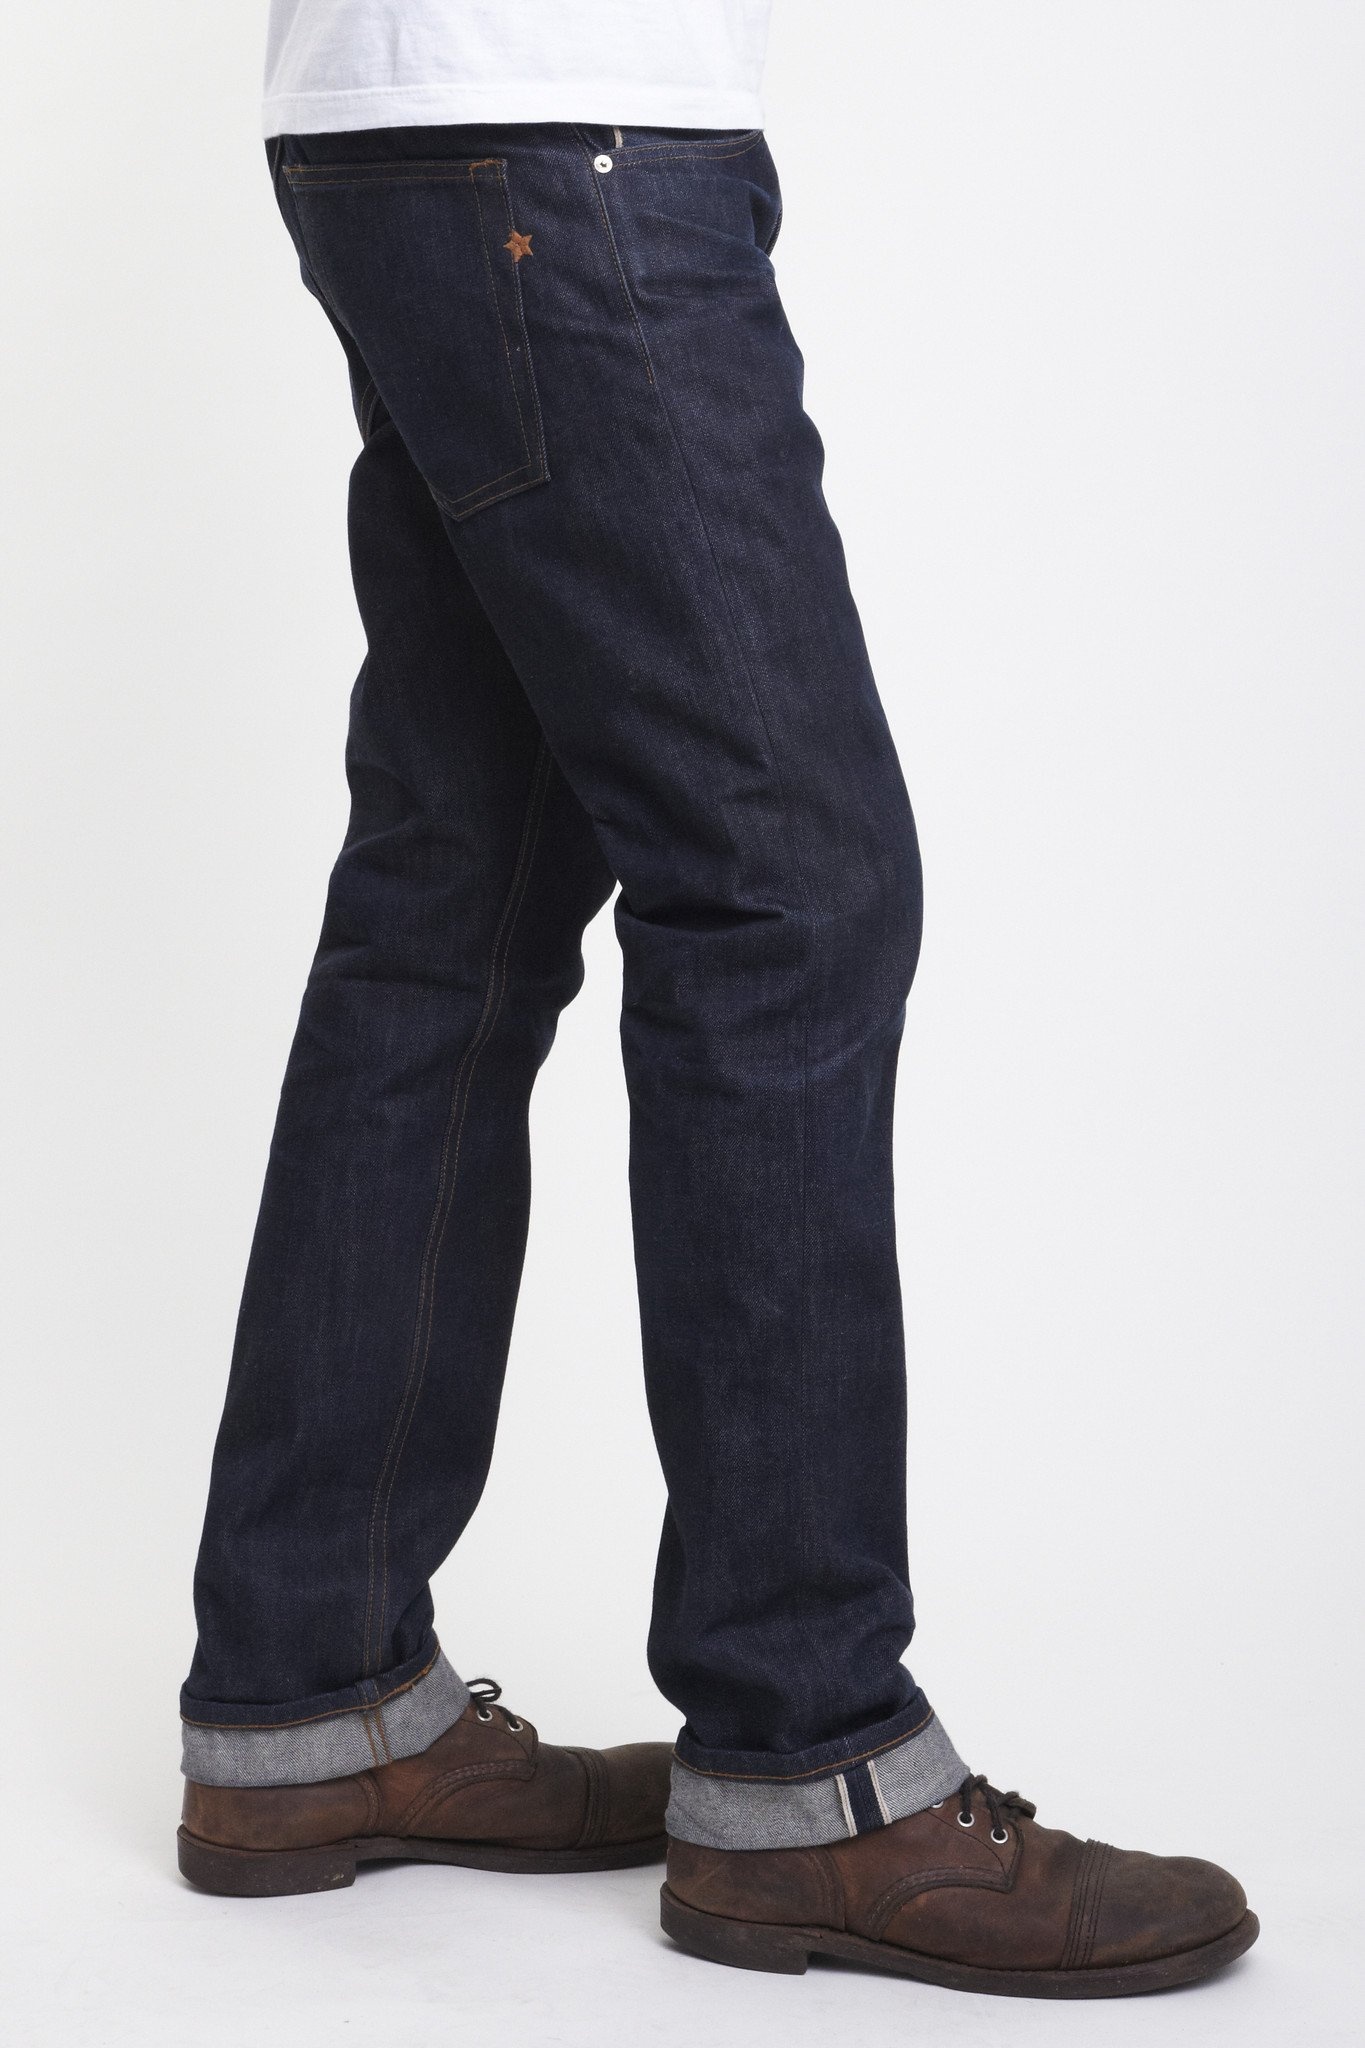 BRAVE STAR The True Straight 13.5oz 'Blue Collar' Cone Mills Selvage